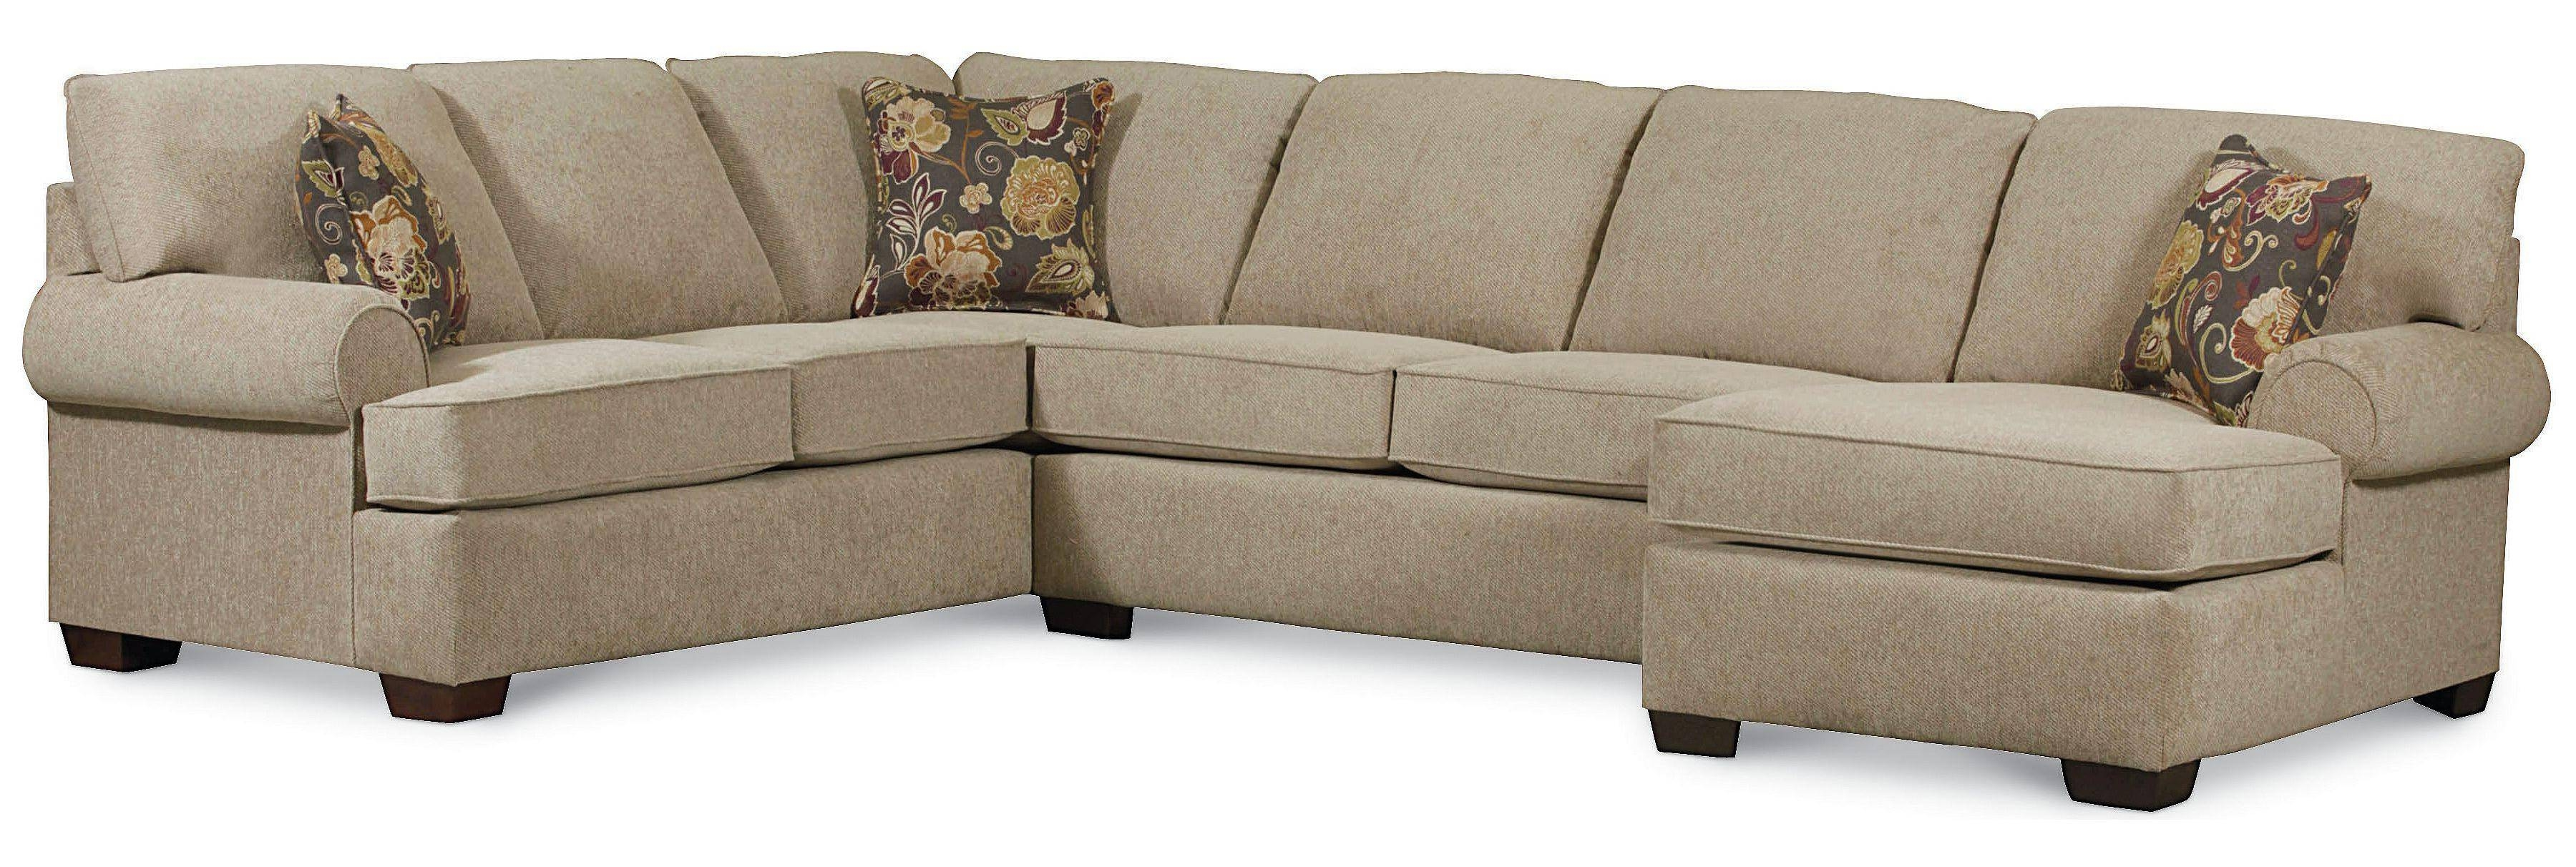 Lane Vivian Transitional 3 Piece Sectional Sofa - Rune's Furniture for 45 Degree Sectional Sofa (Image 13 of 30)